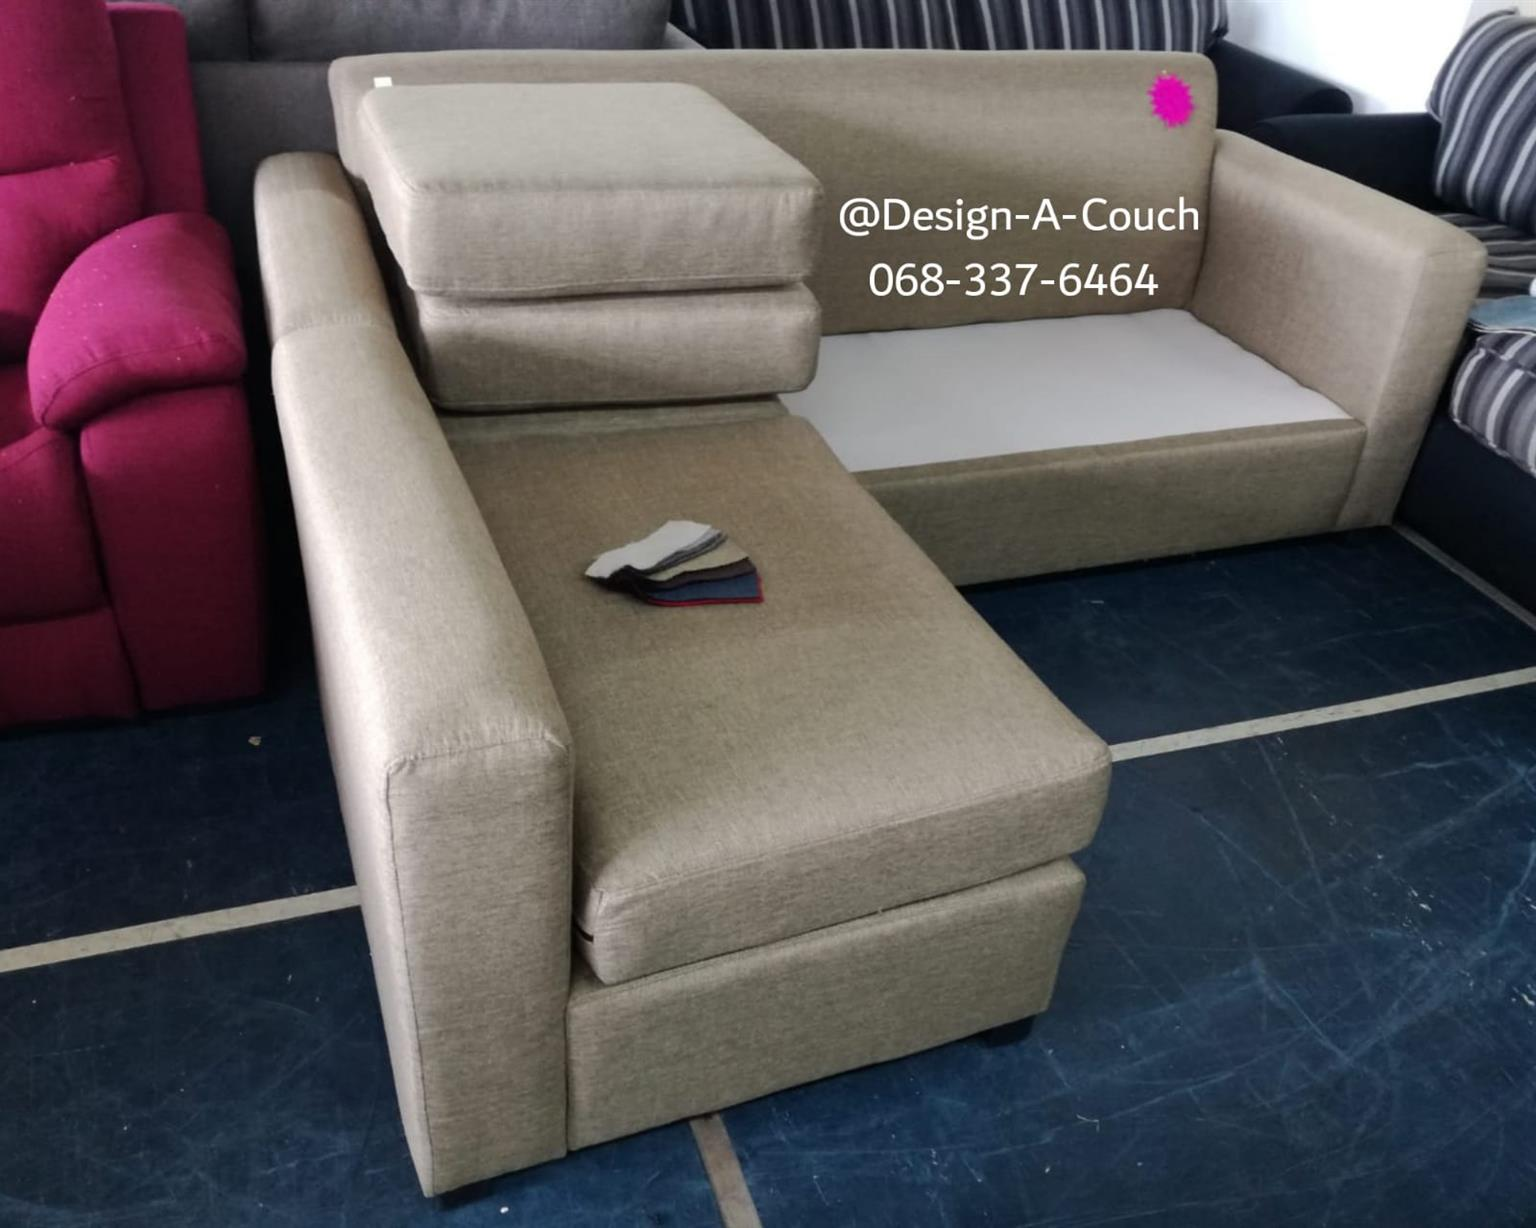 L-shaped interchangeable daybed couch